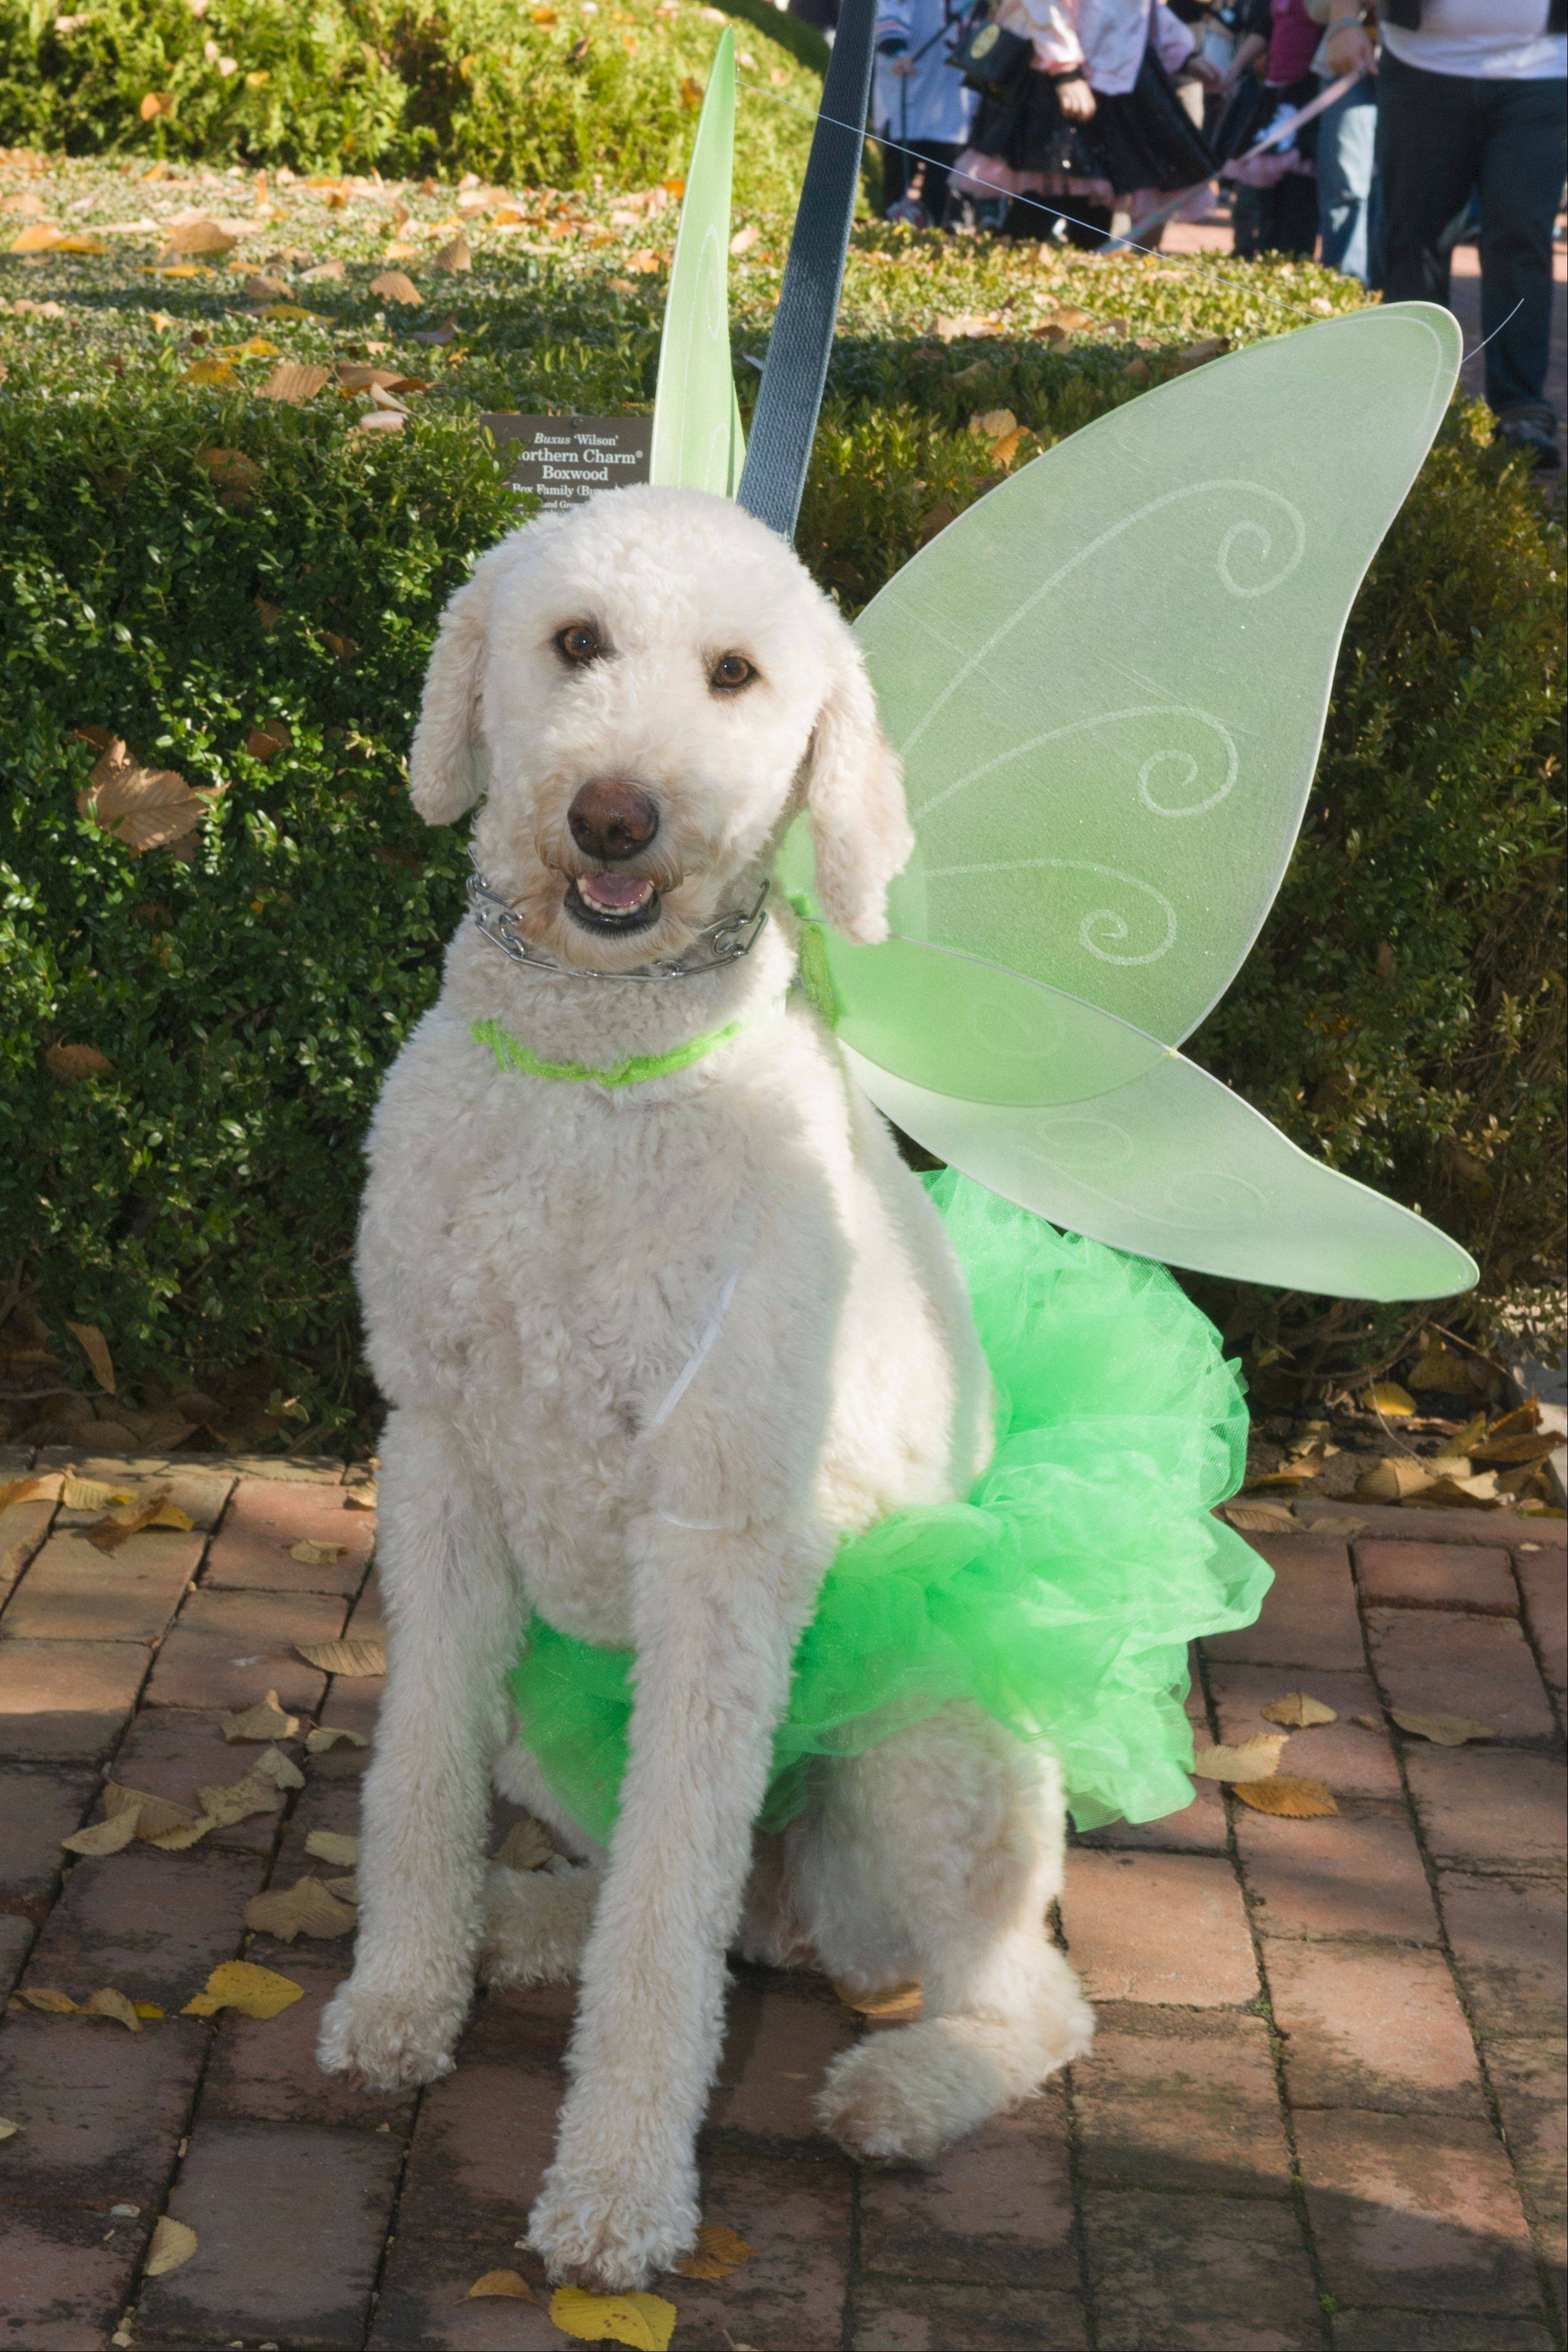 A pixie was part of the 2012 Spooky Pooch Parade at the Chicago Botanic Garden in Glencoe. Check it out this year on Saturday, Oct. 19.